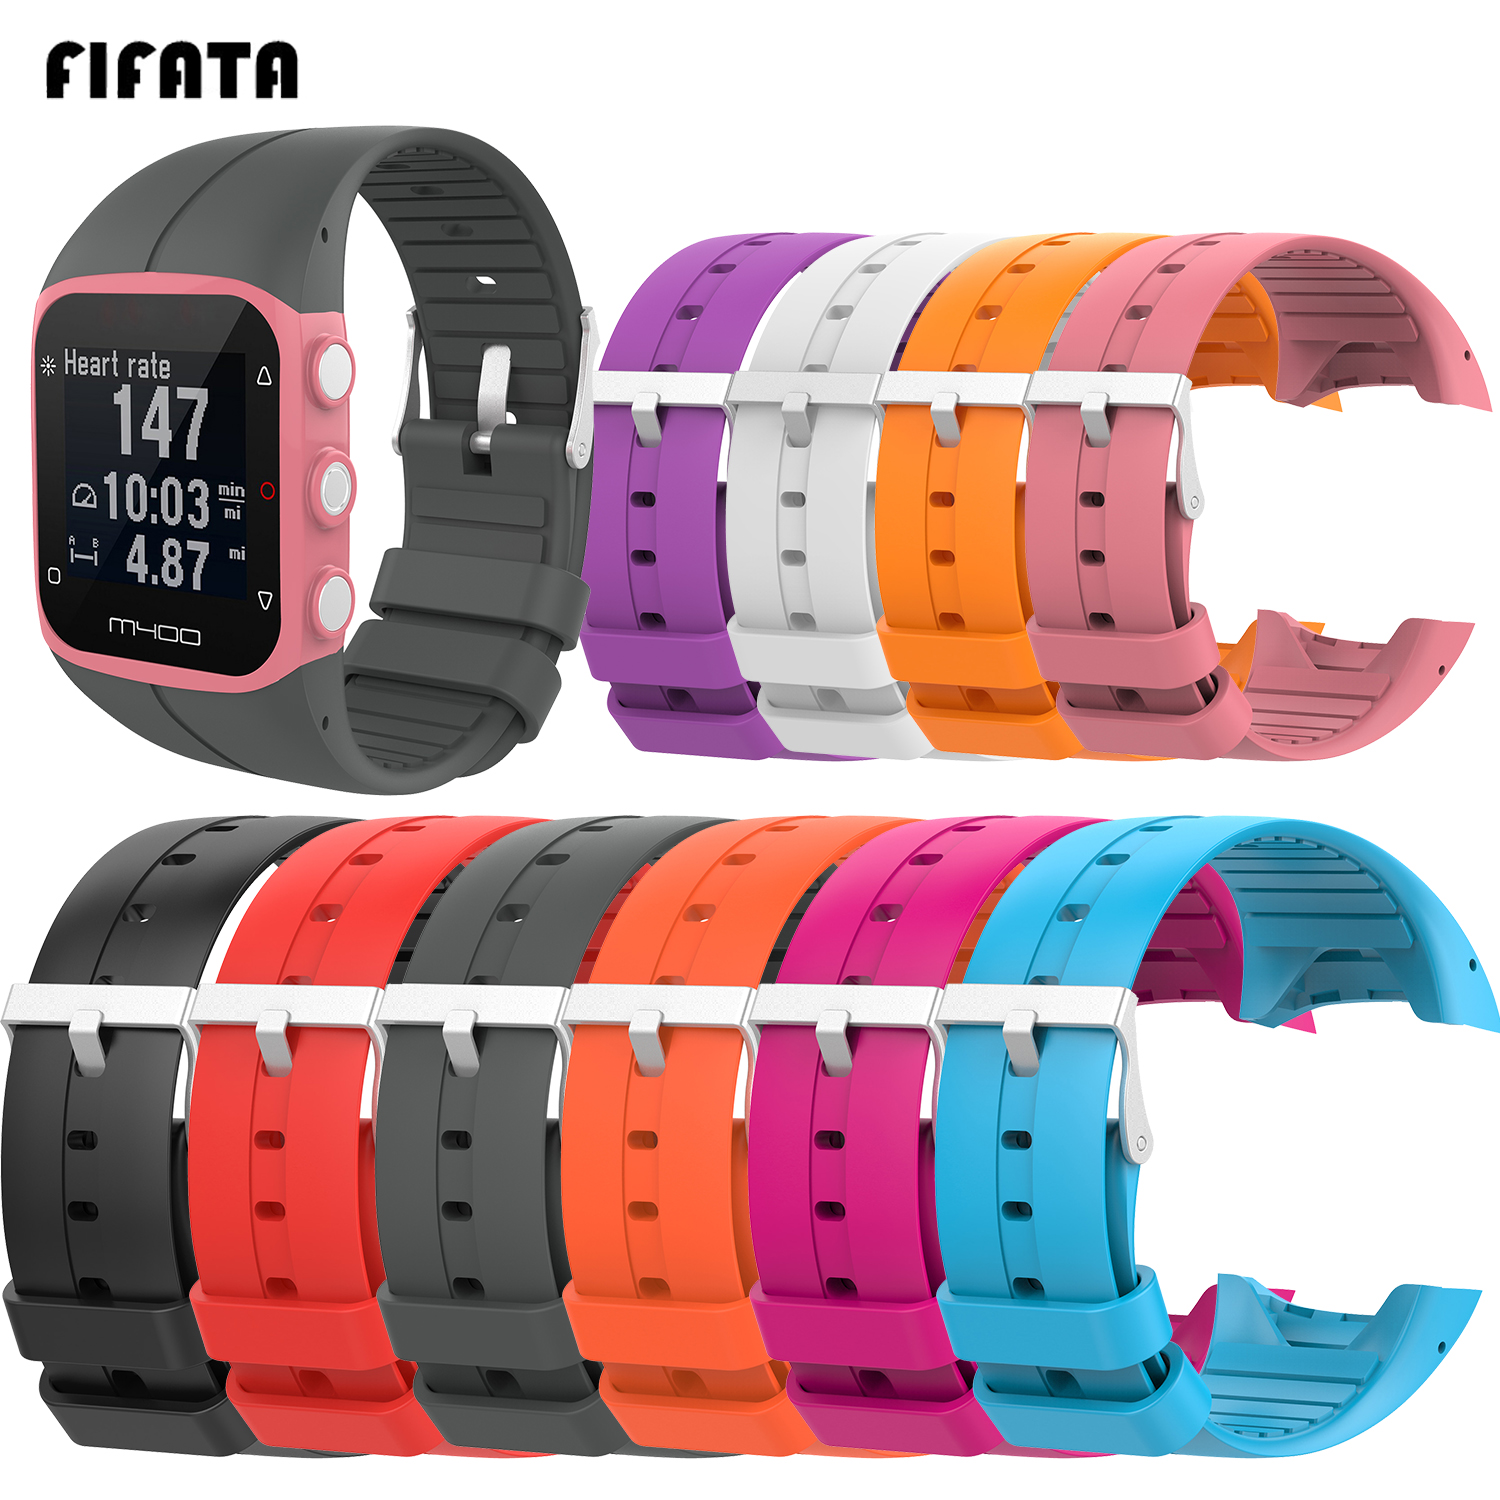 FIFATA Replacement Soft Silicone Watch Sport Band Strap For Polar M400 Band For Polar M430 Smart Watch Bracelet Wrist Strap